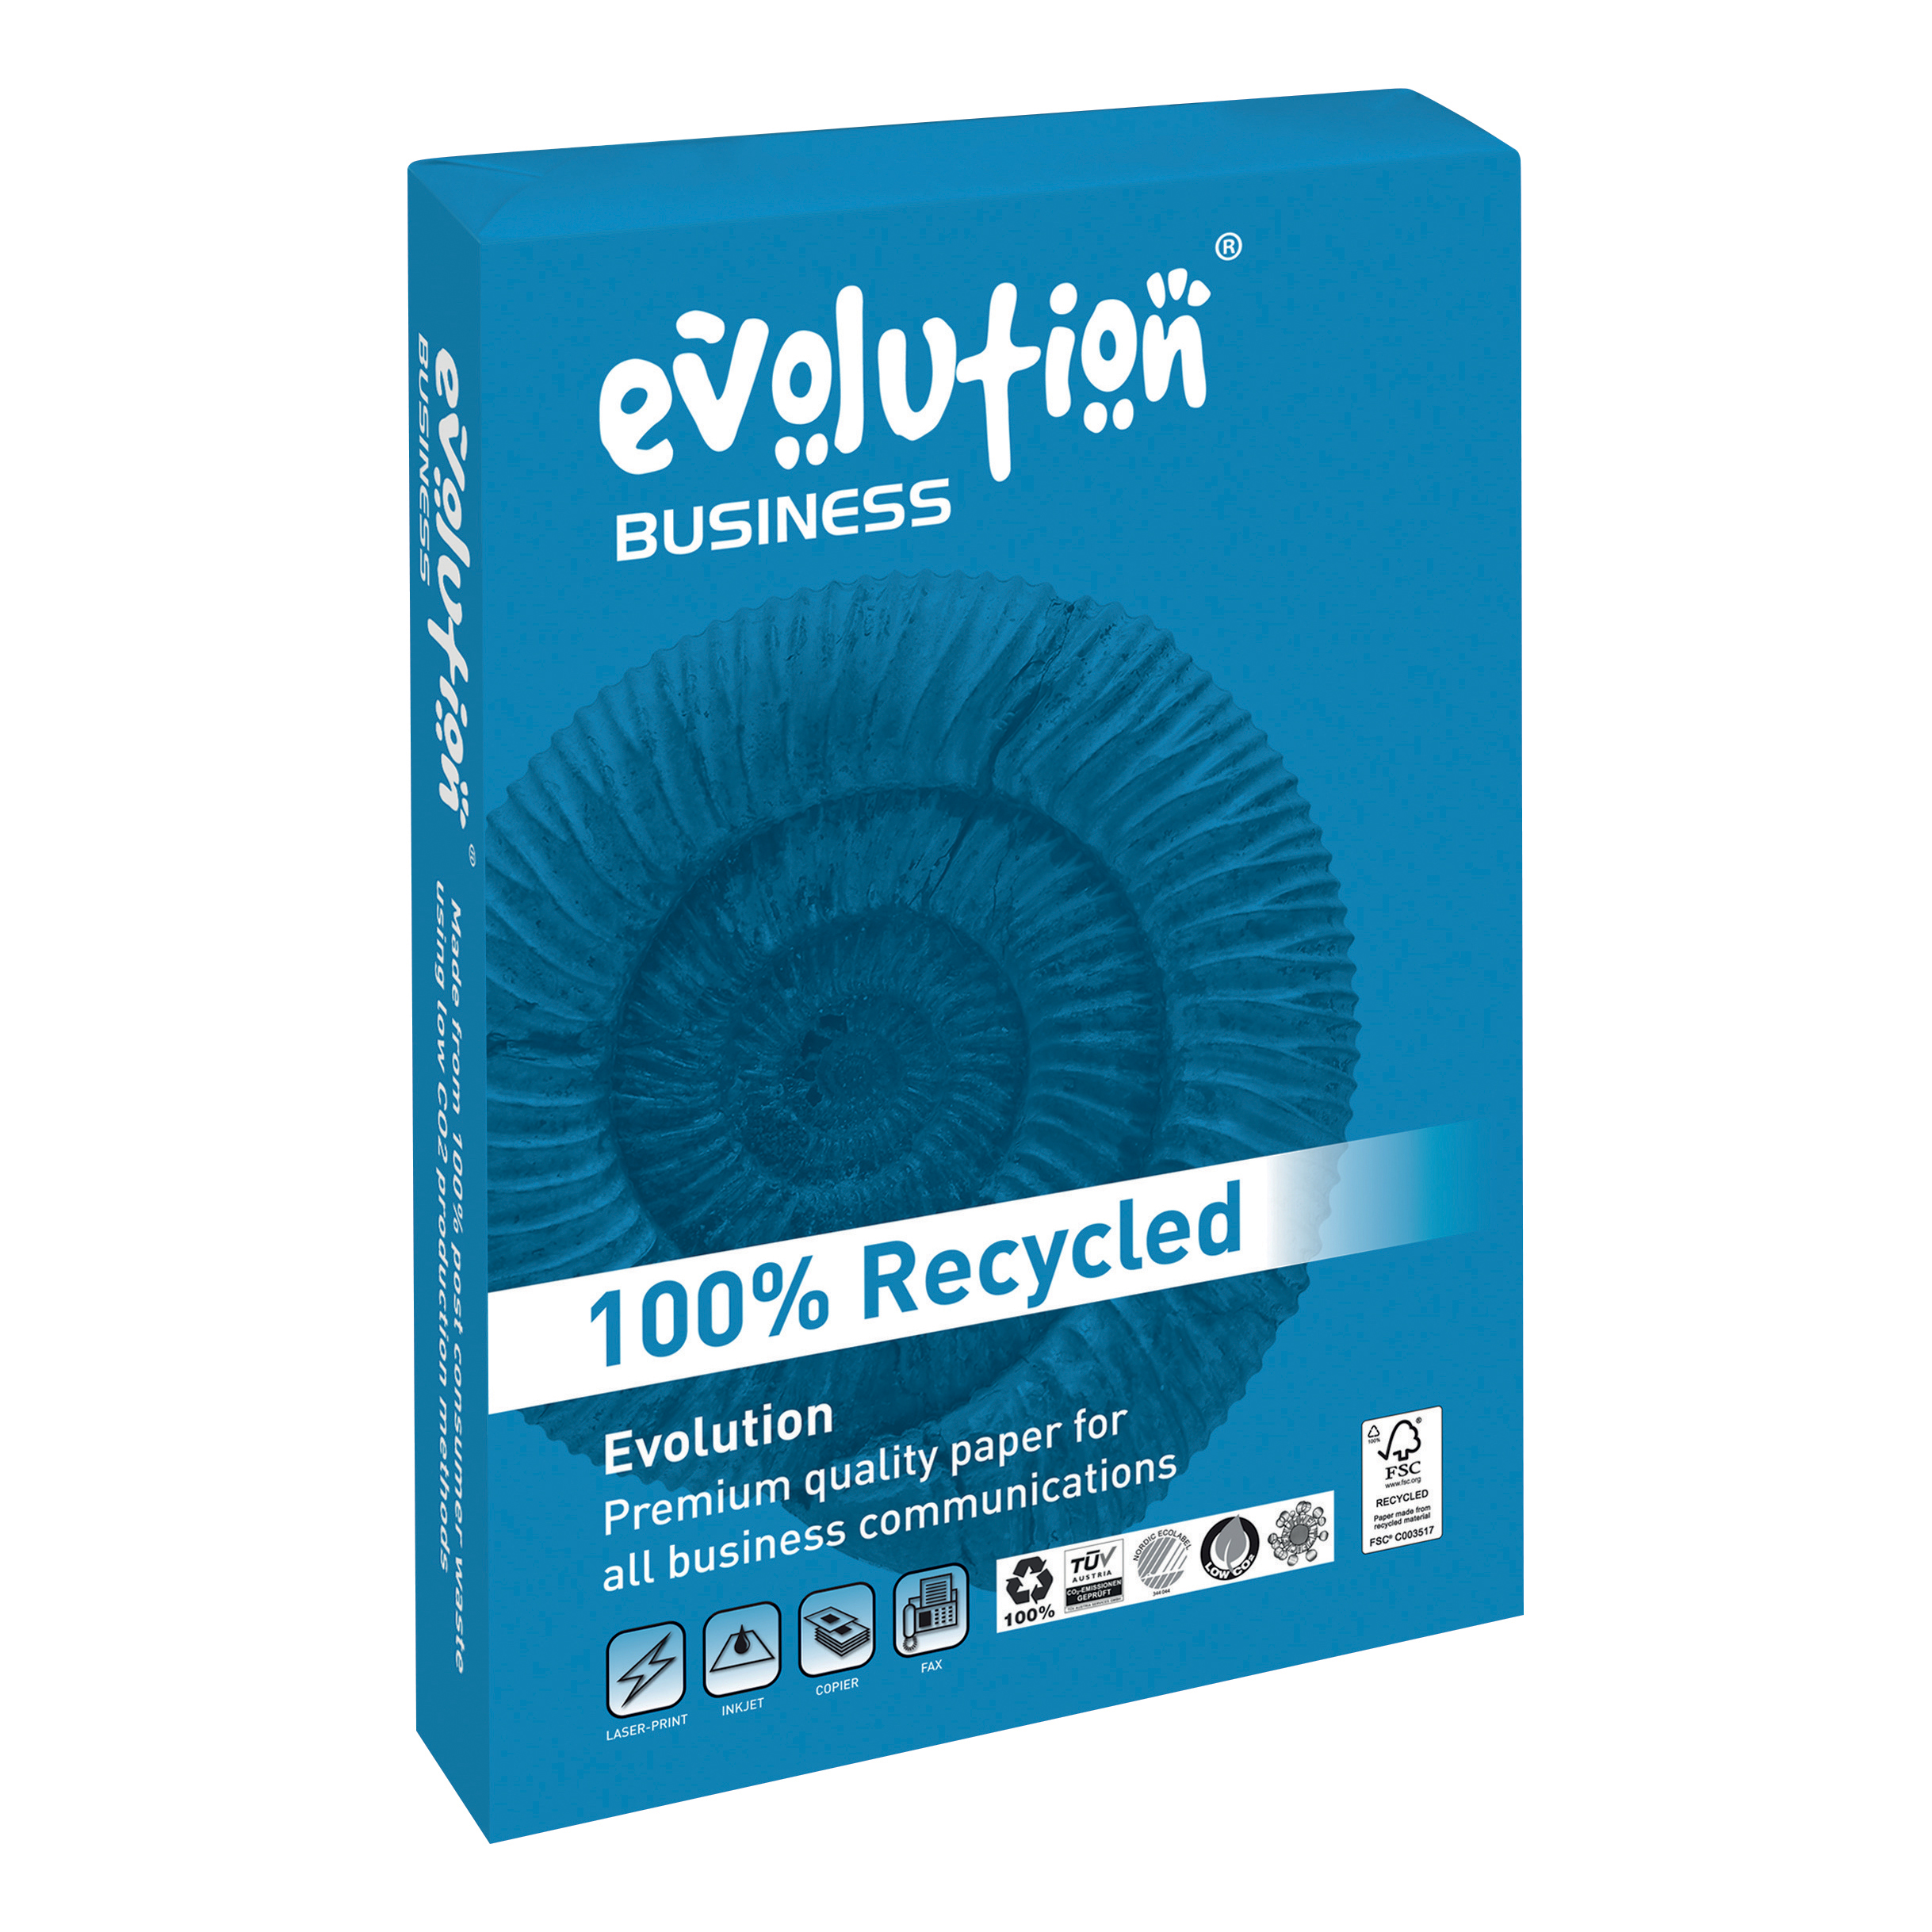 Evolution Business Recycled Paper 100gsm FSC A4 White Ref EVBU21100 (500 Sheets)